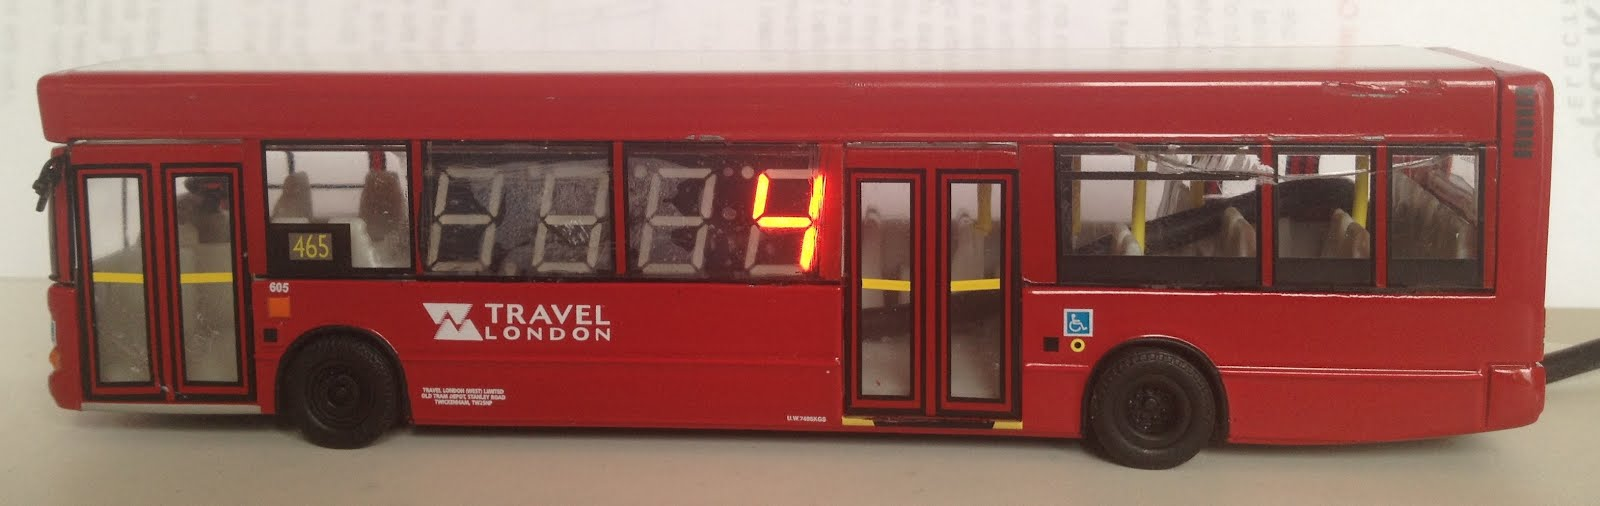 Ambient Bus Arrival Monitor